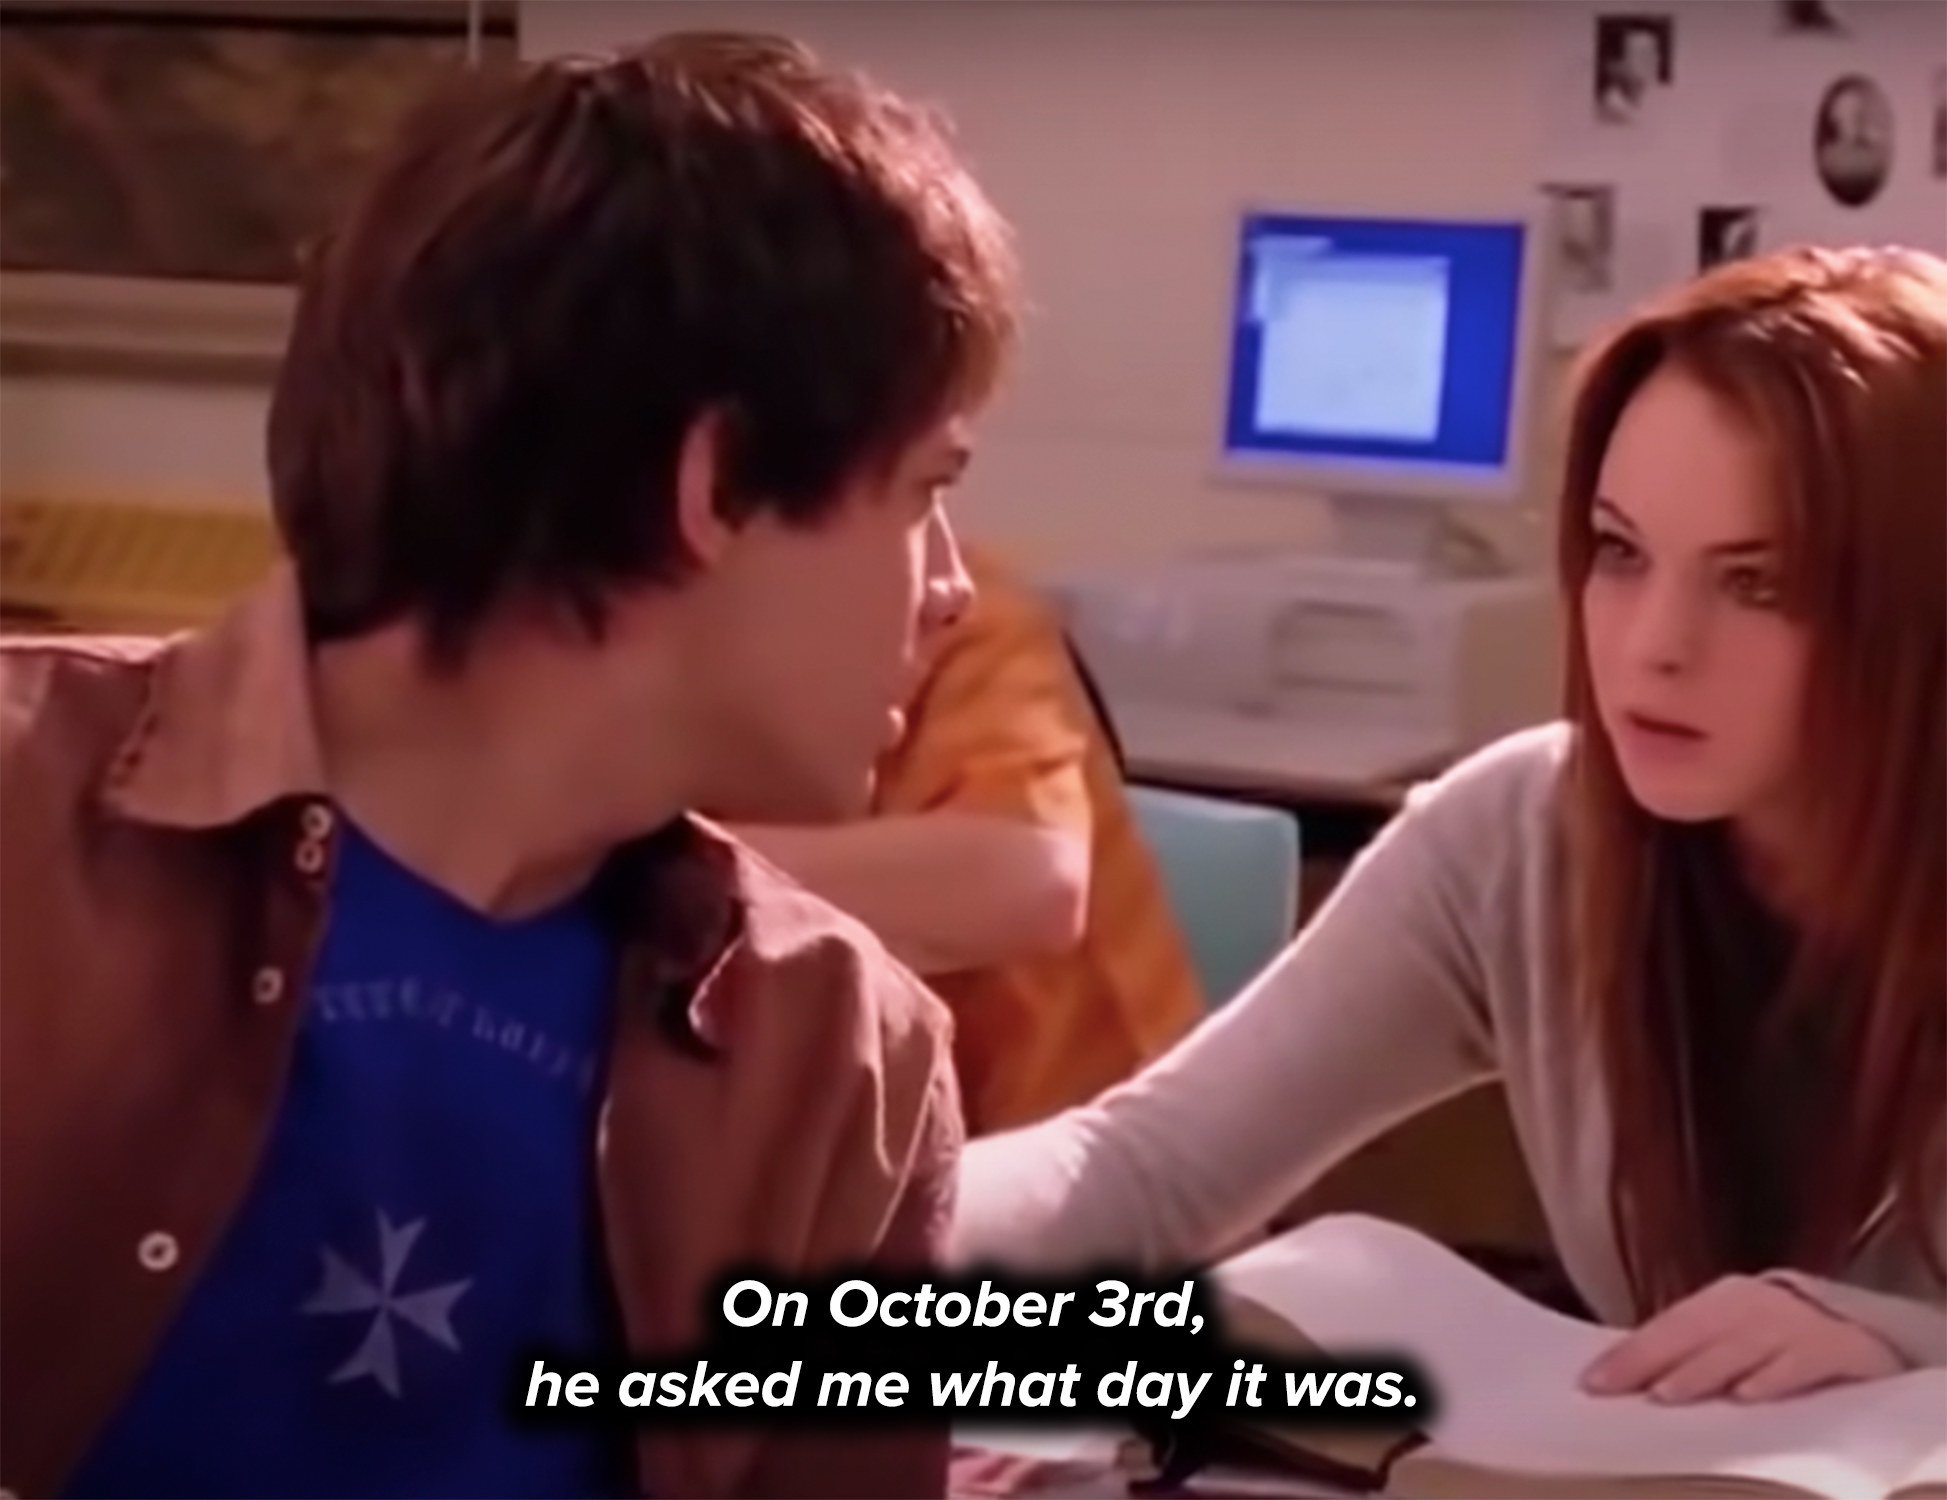 On Oct 3rd, he asked her what day it was